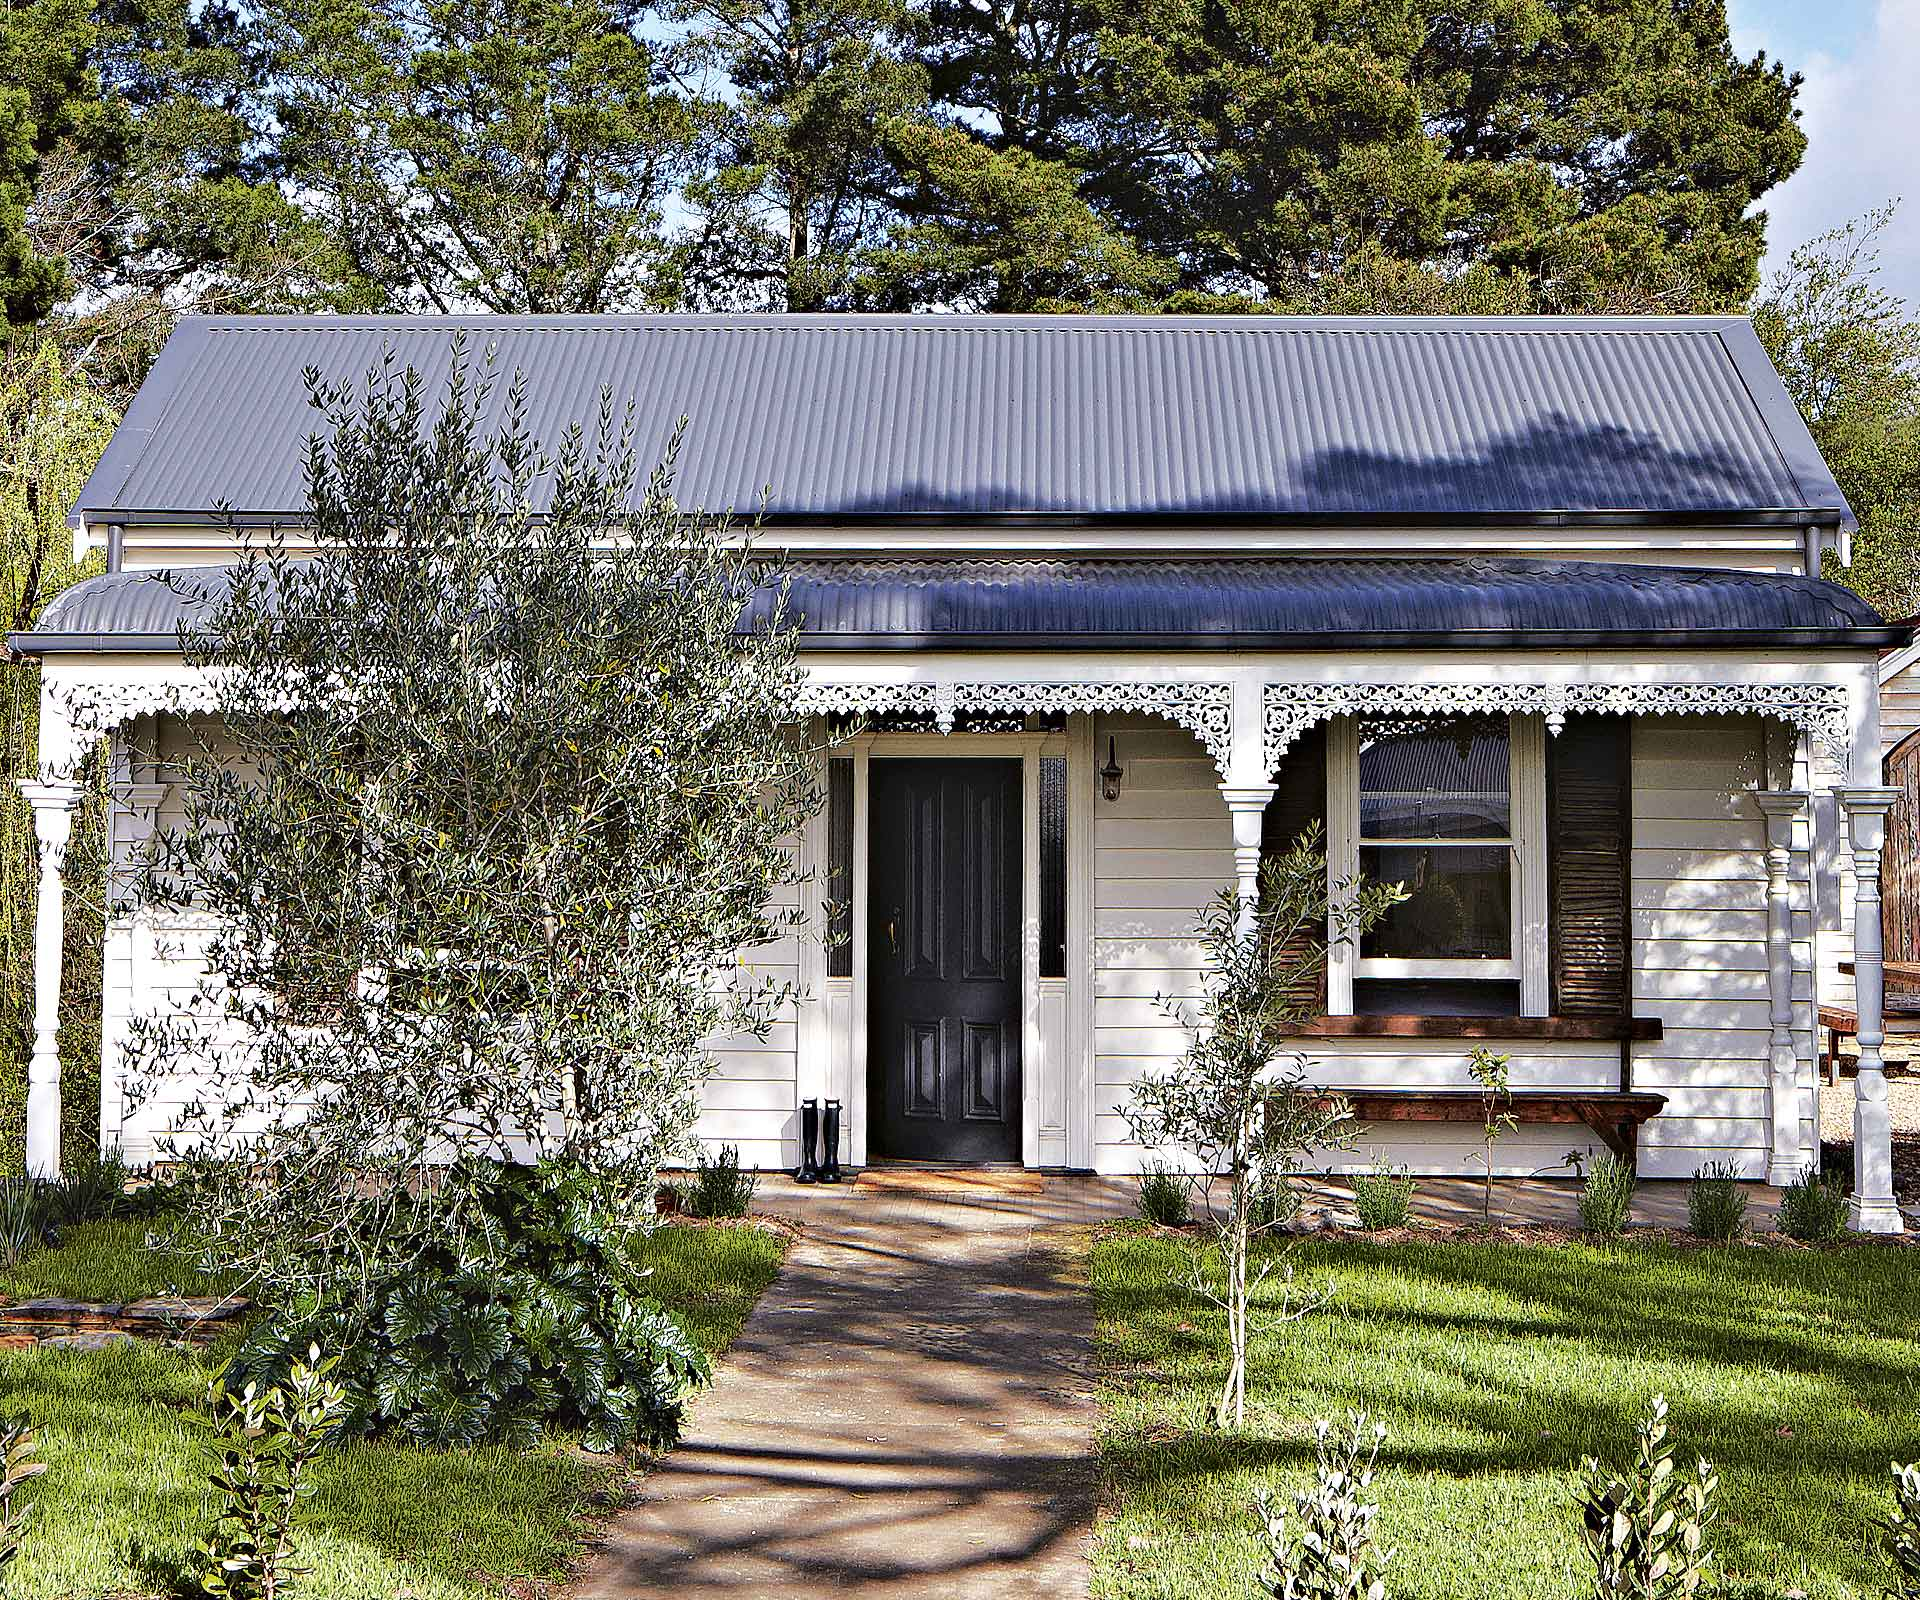 The best roofing materials for Australian homes